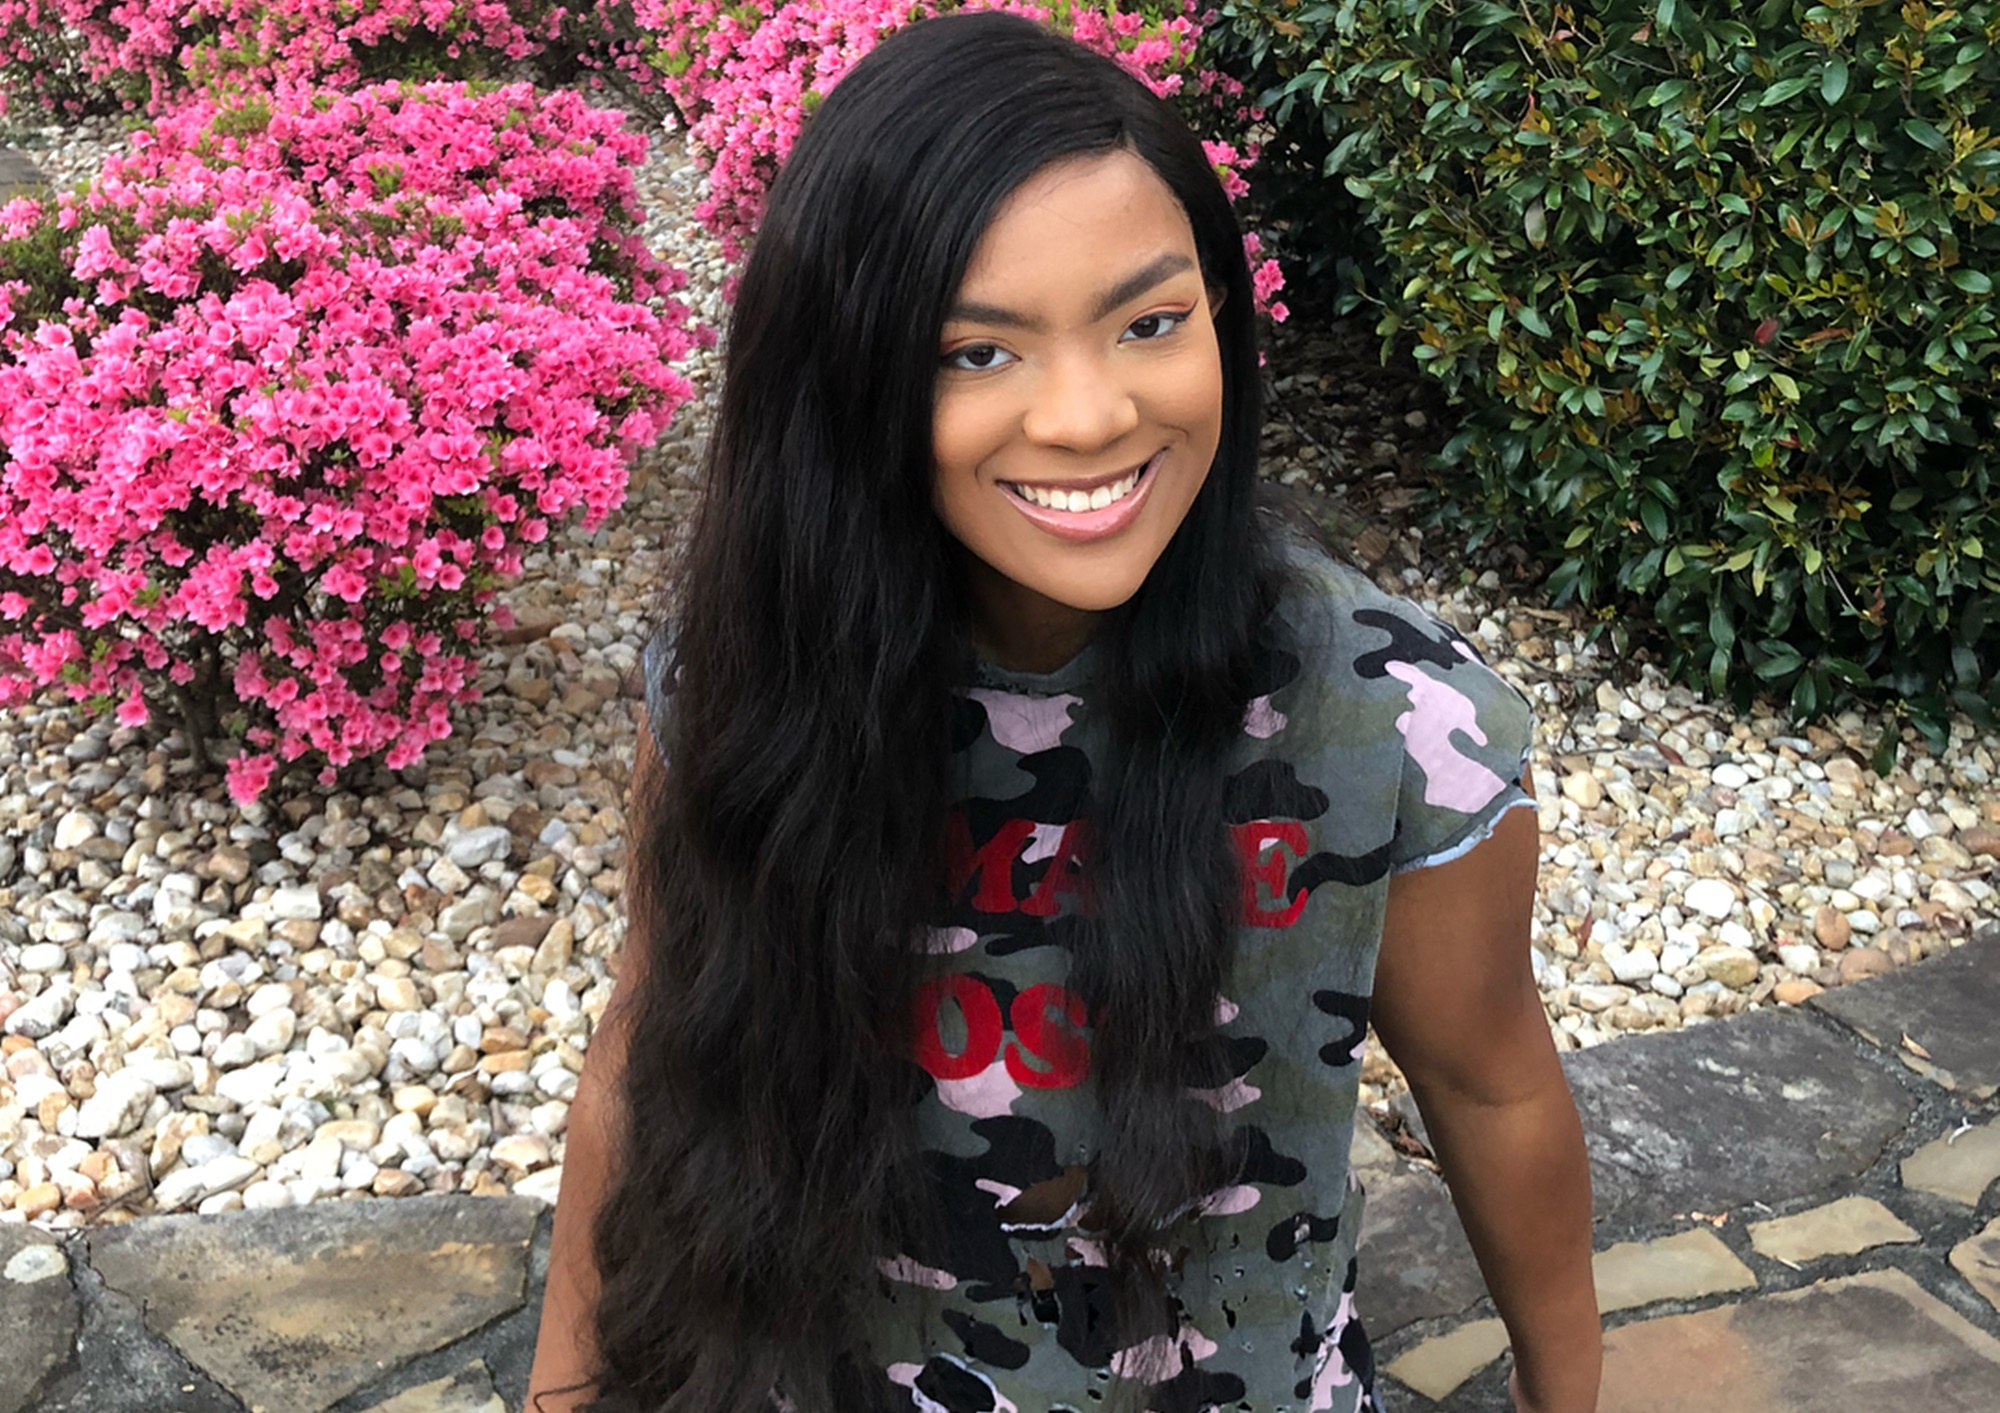 Kandi Burruss' Daughter, Riley Burruss Sends Love To Everyone Who Wished Her All The Best For Her Birthday